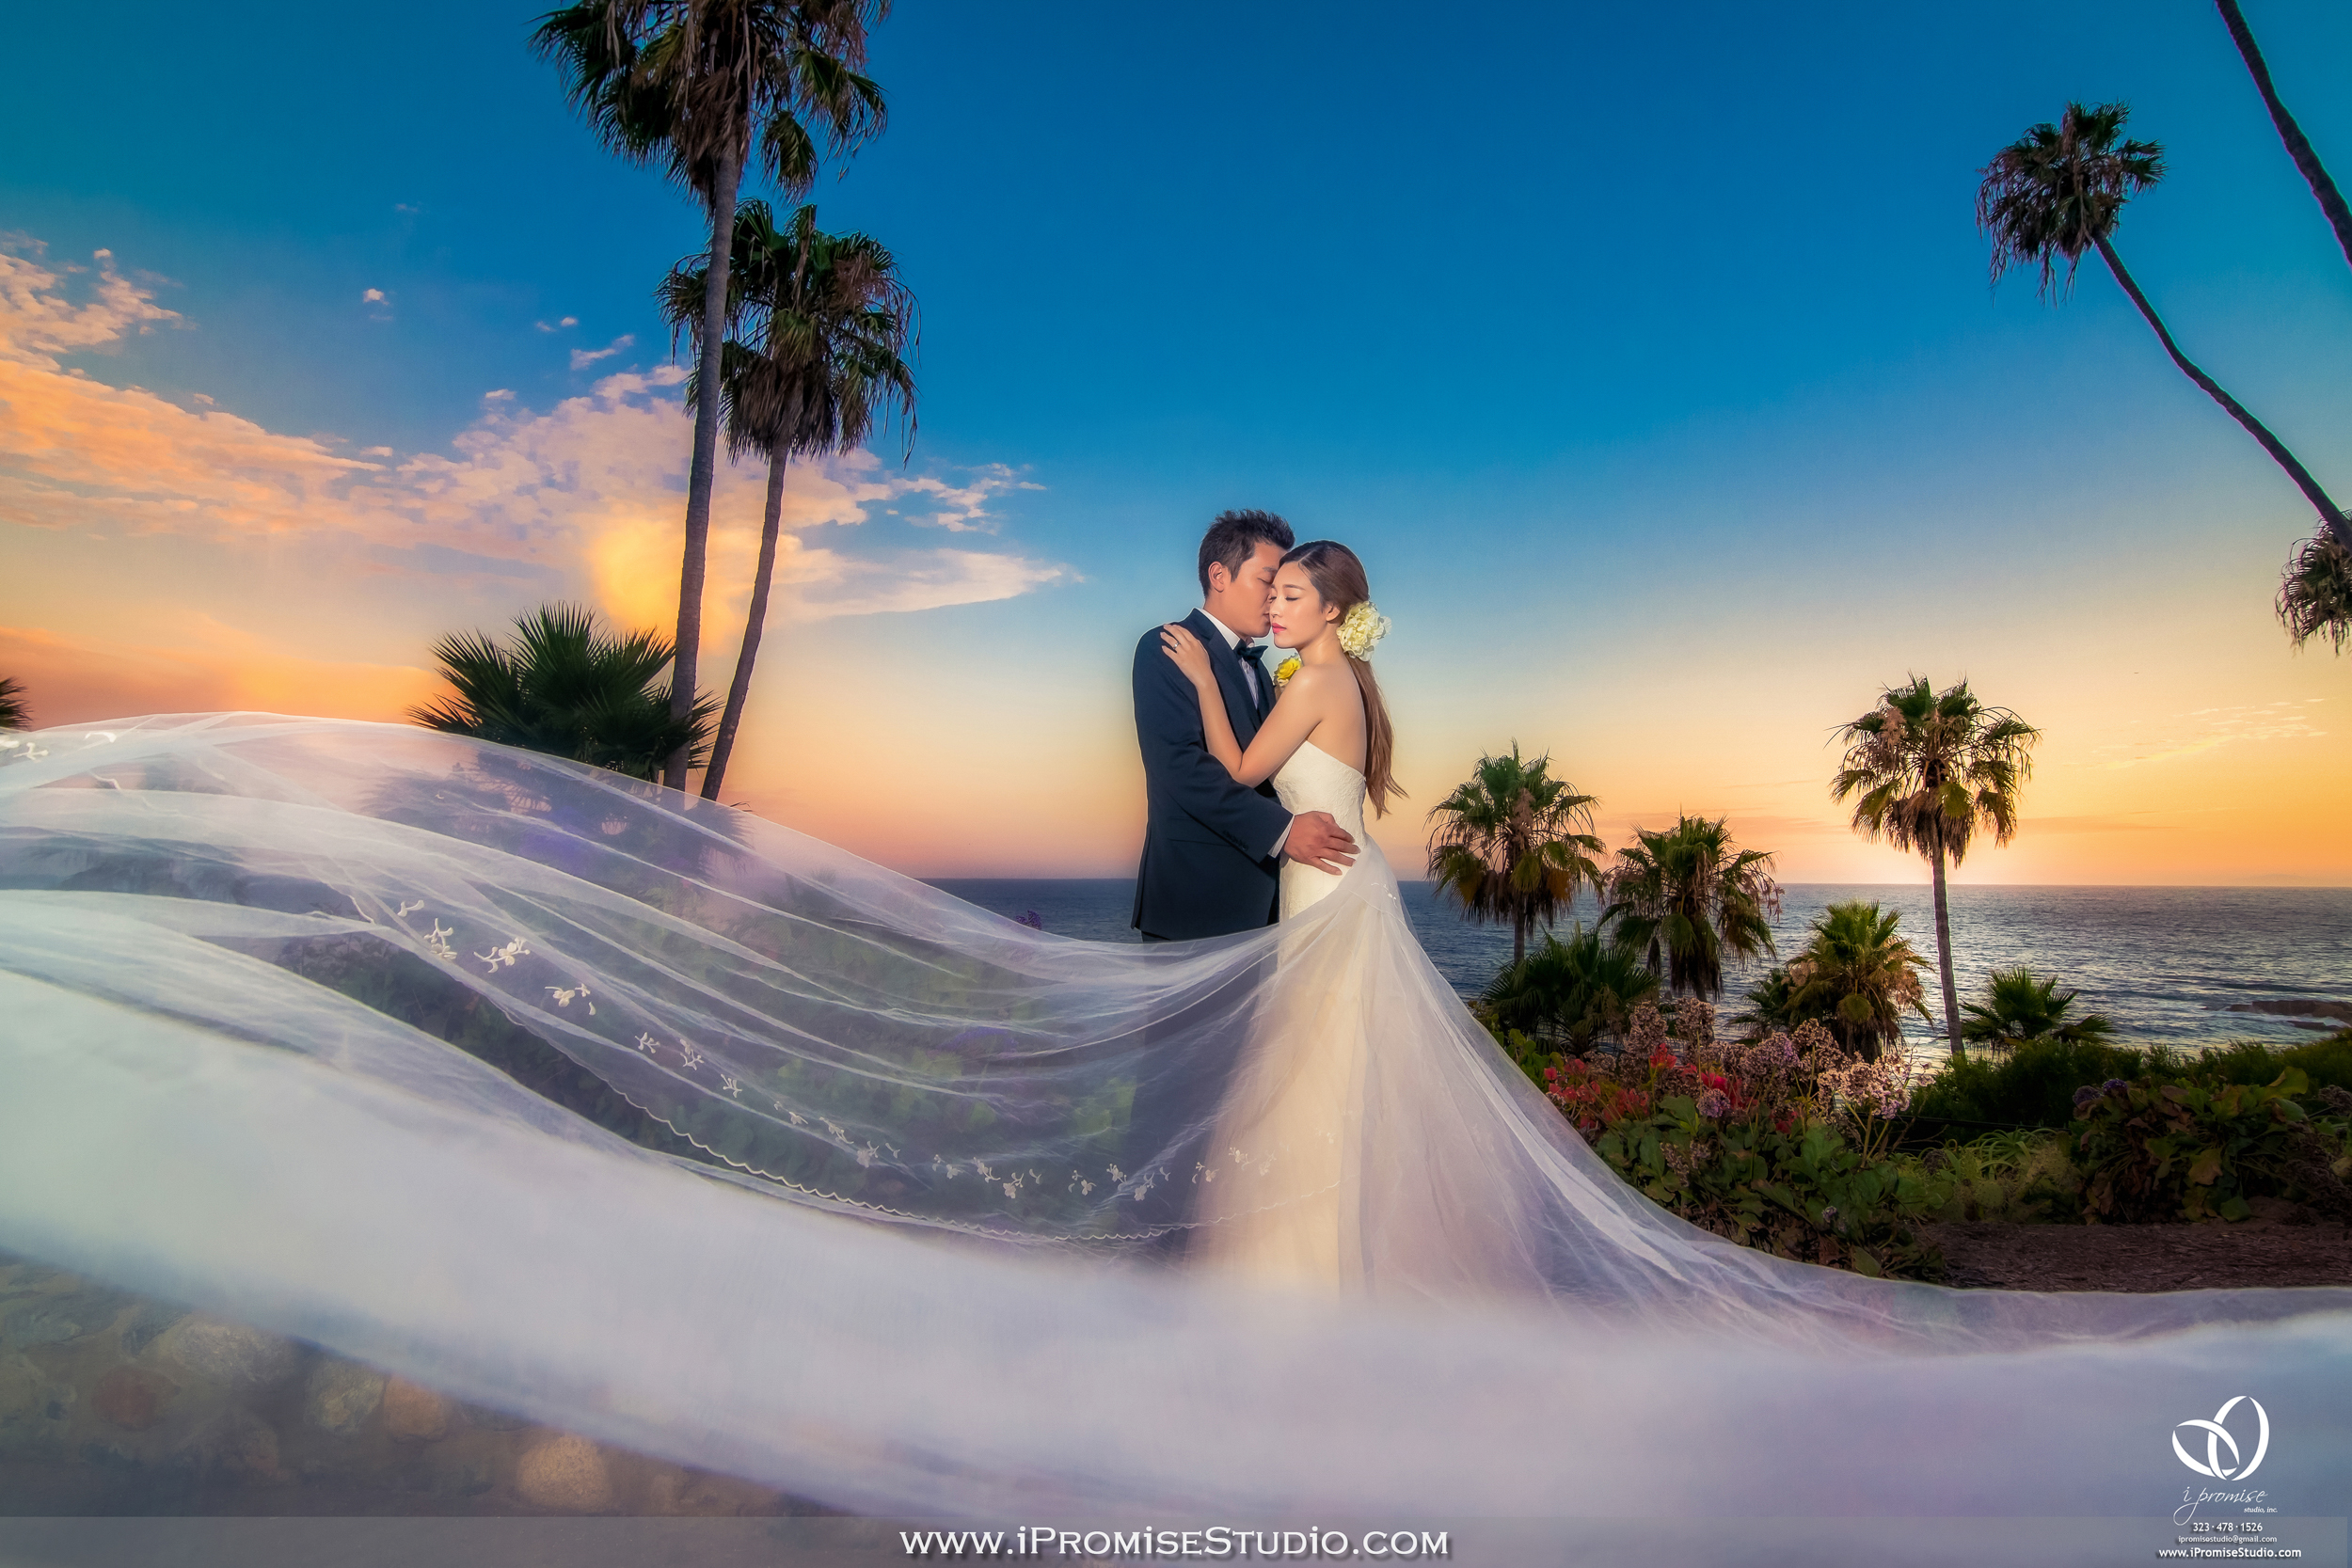 Laguna beach engagement wedding 01.JPG